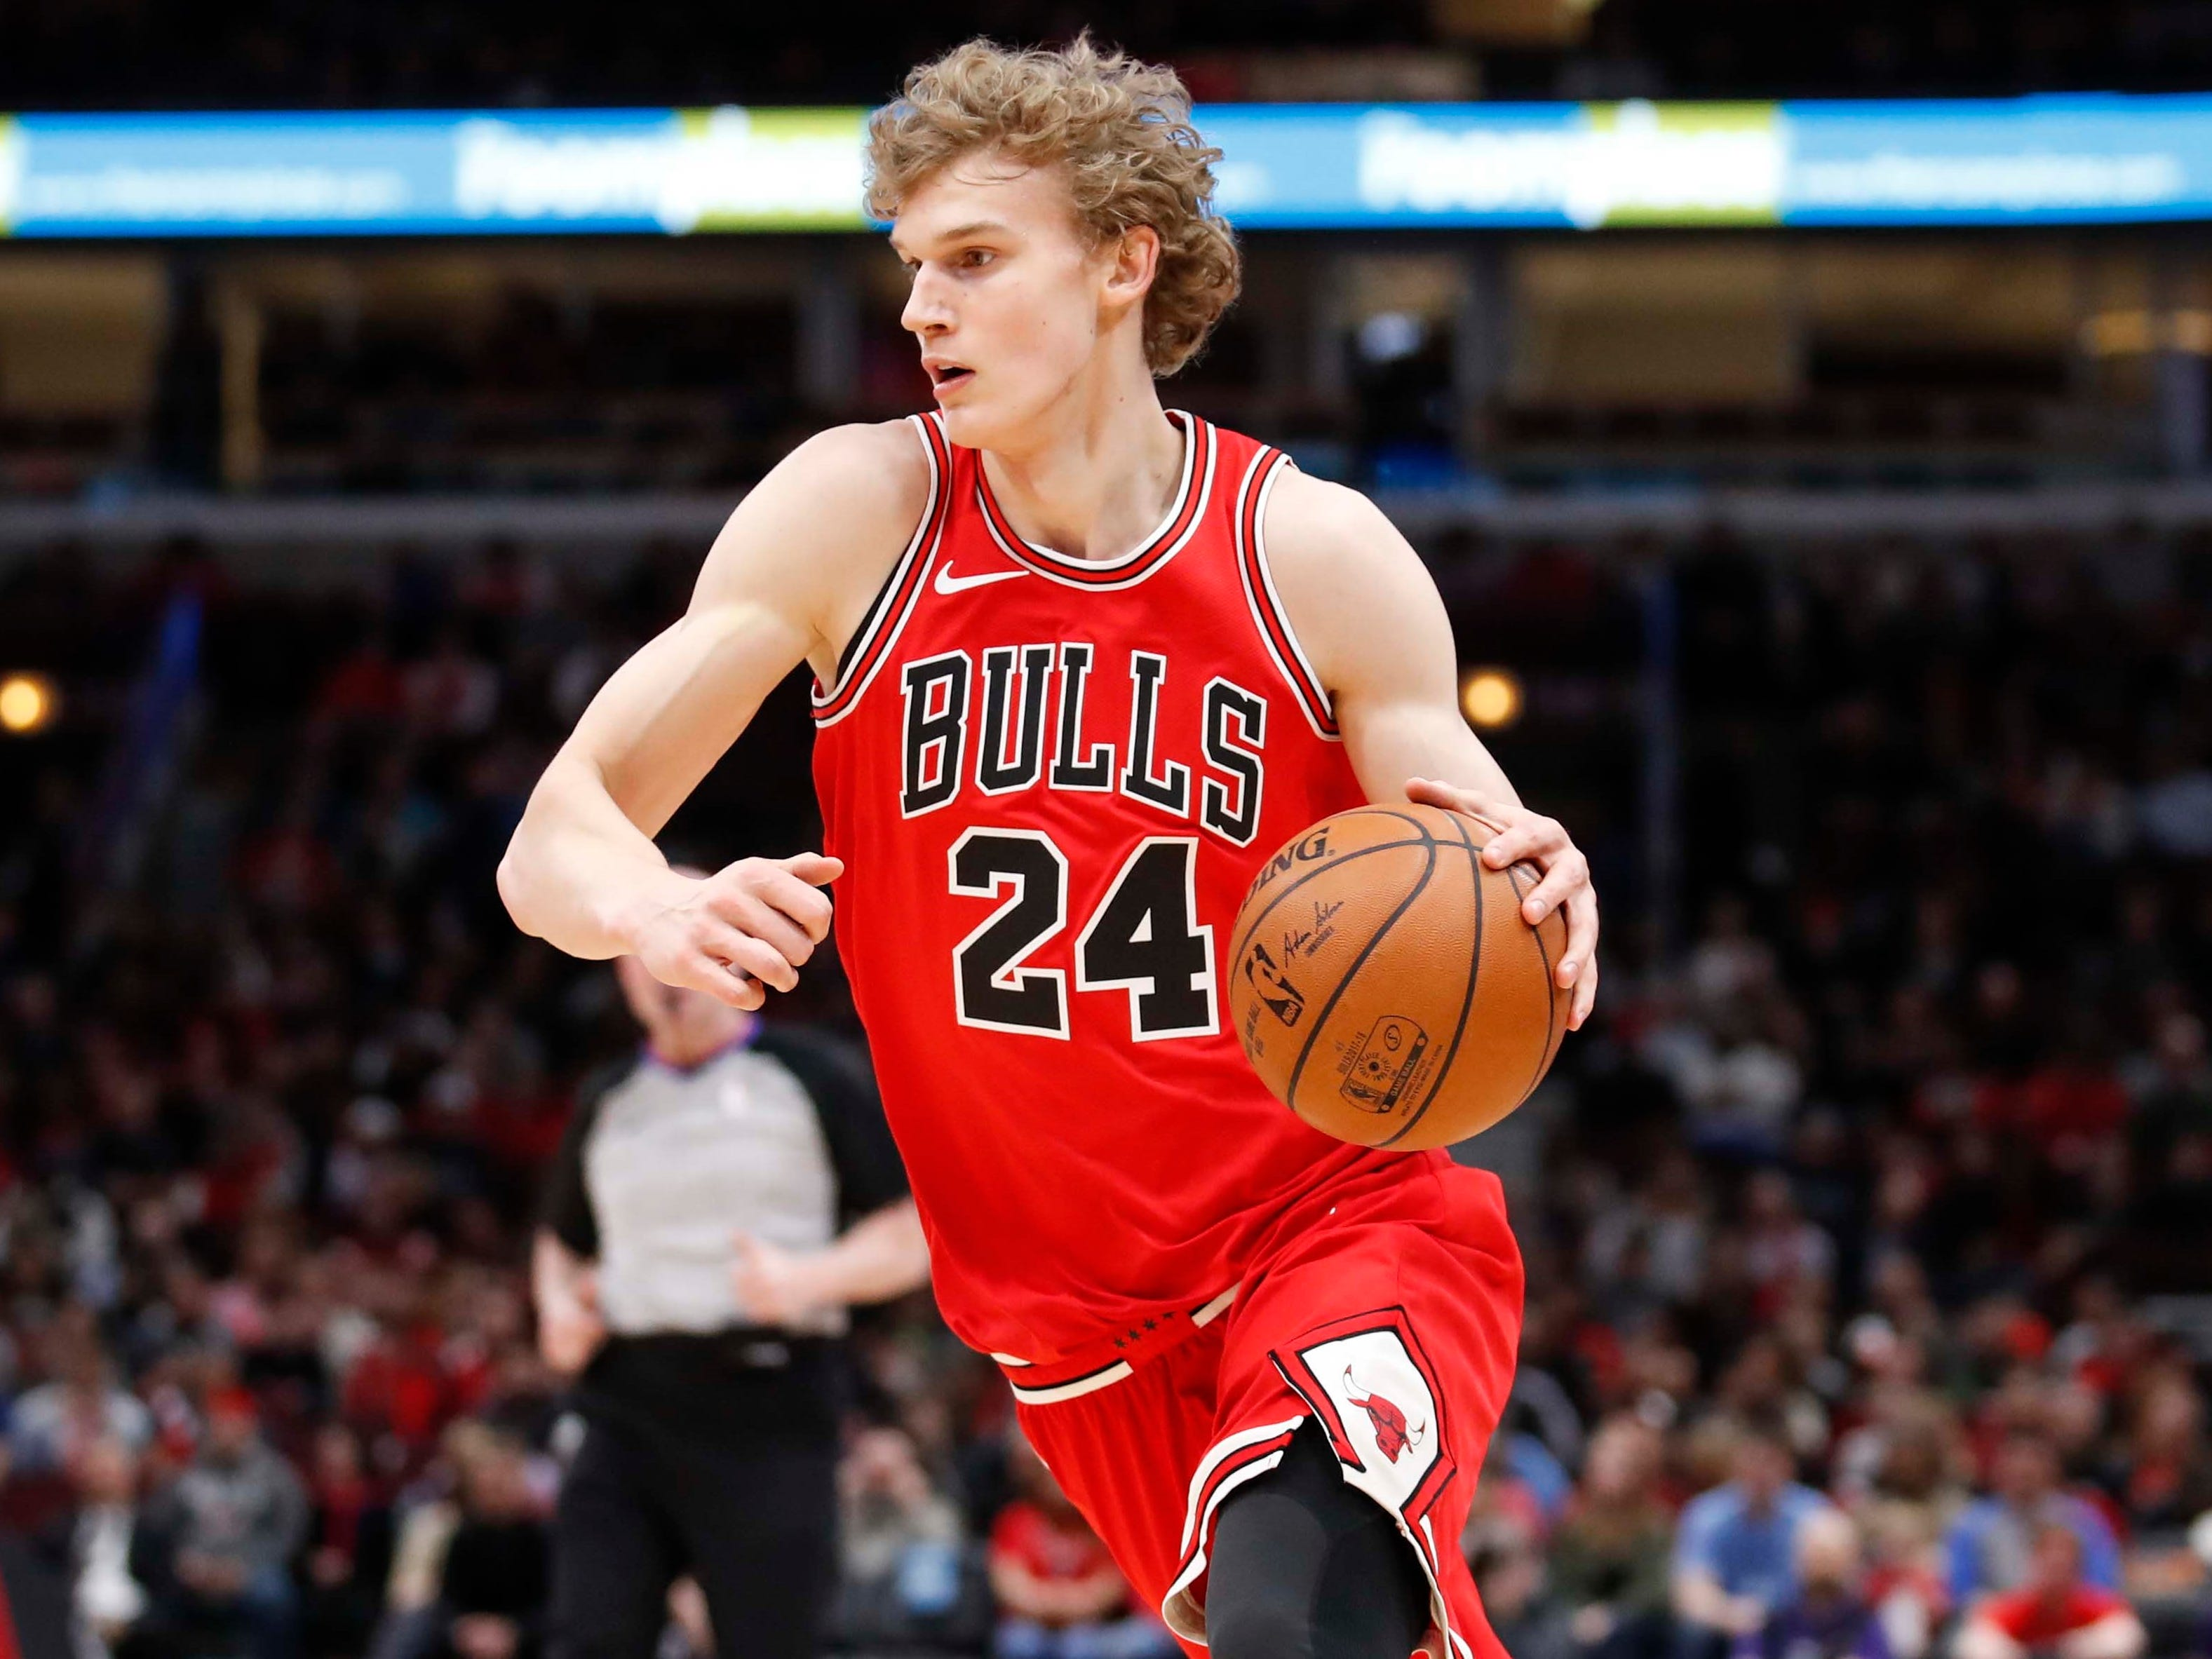 Lauri Markkanen, Chicago Bulls — 21 (born 5/22/1997)